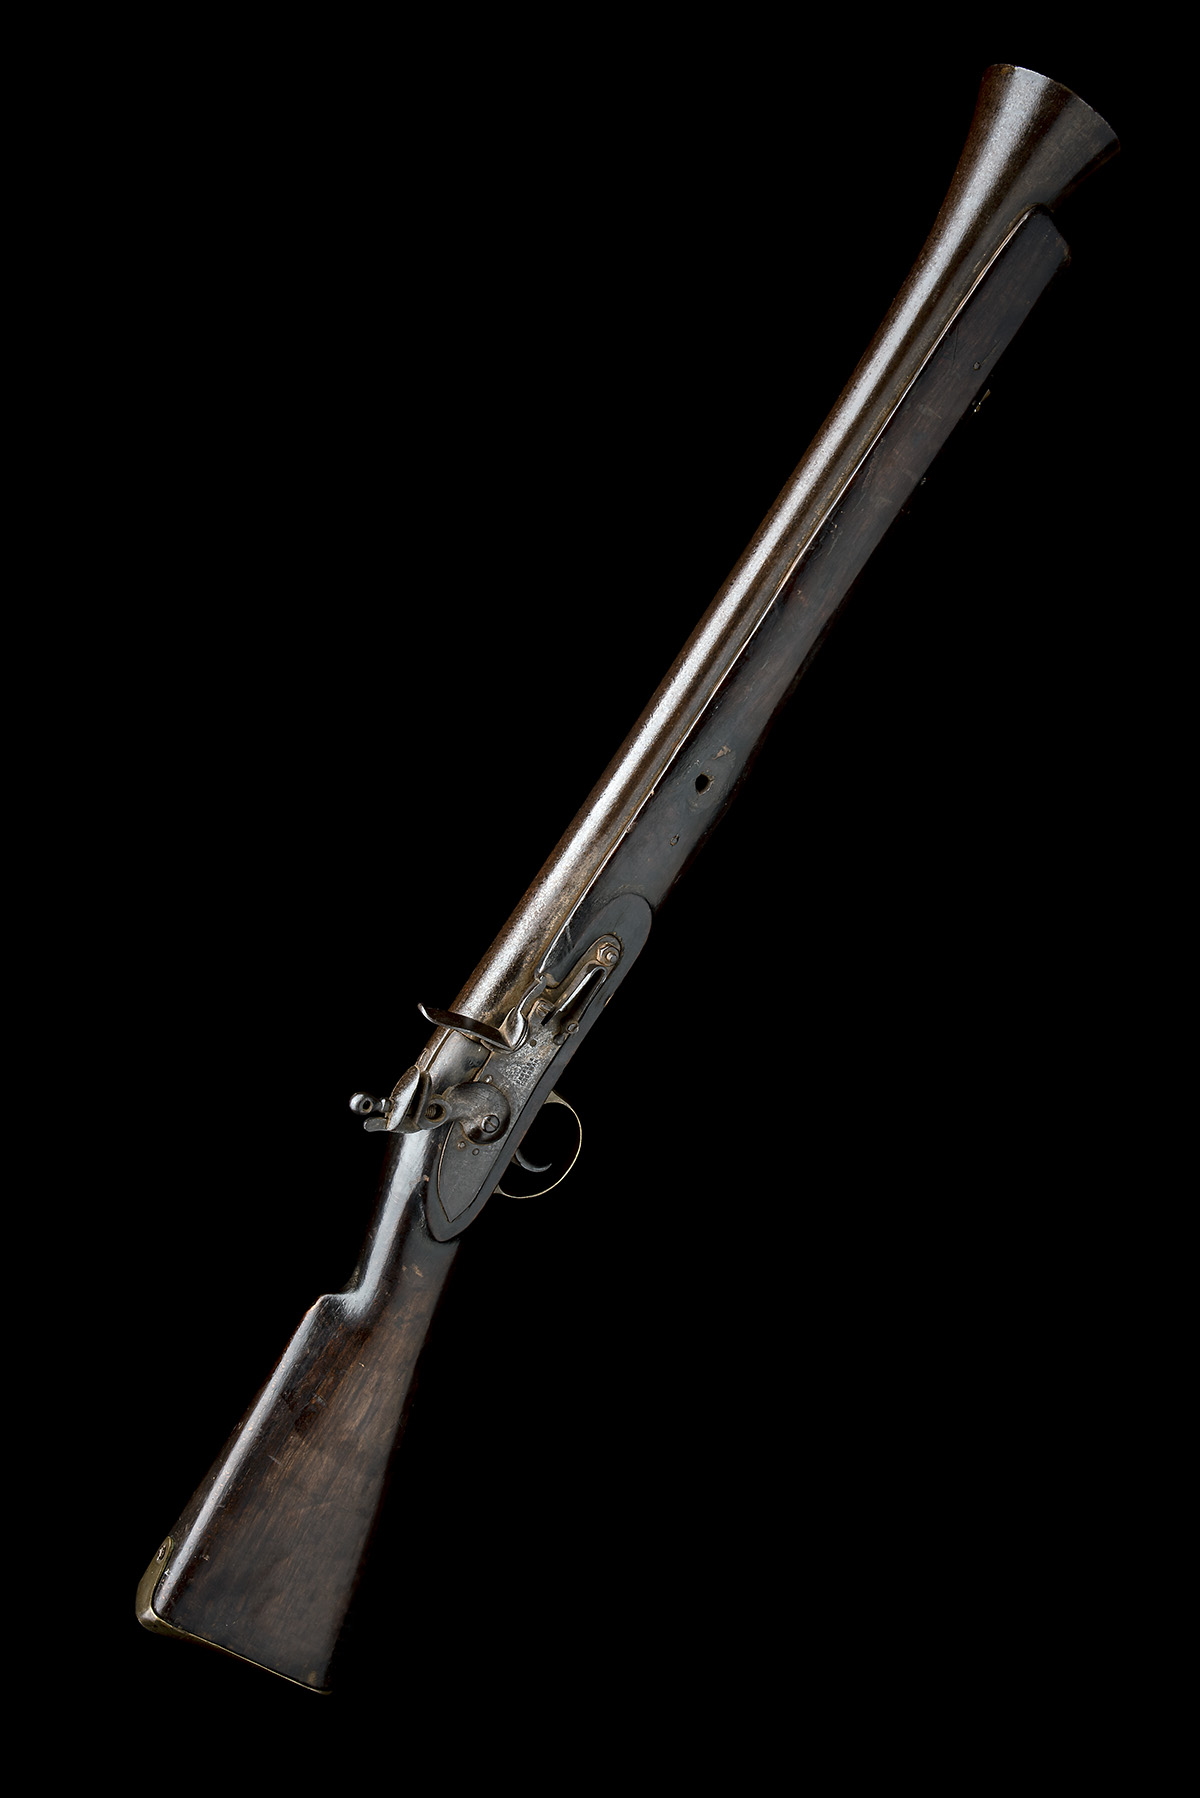 COOPER & GOODMAN, BIRMINGHAM A SUBSTANTIAL 10-BORE FLINTLOCK IRON-BARRELLED BLUNDERBUSS, no